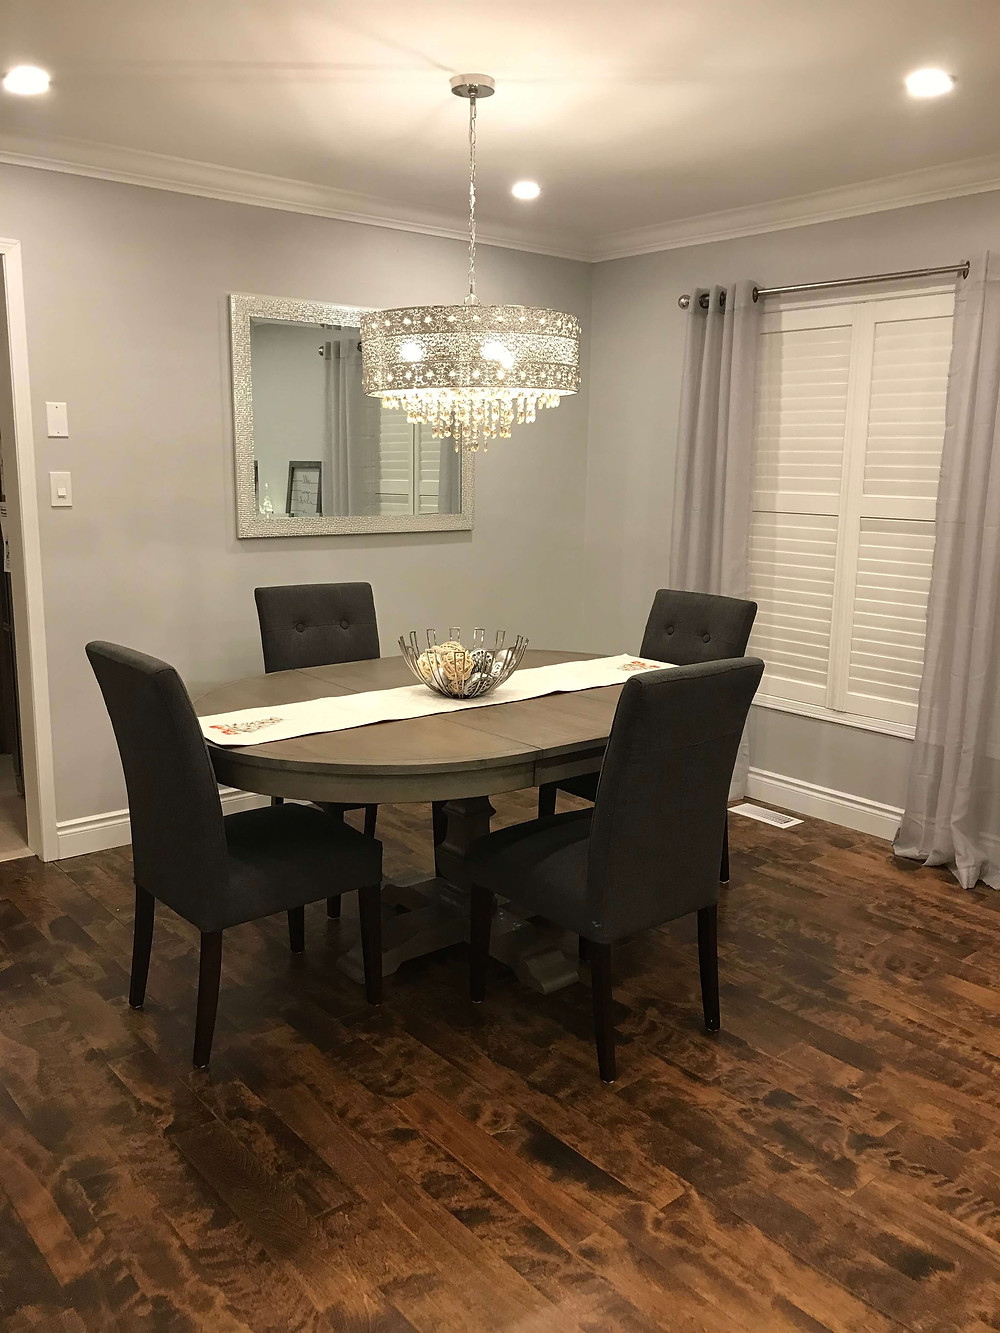 Elegant dining room by Georgia's Design